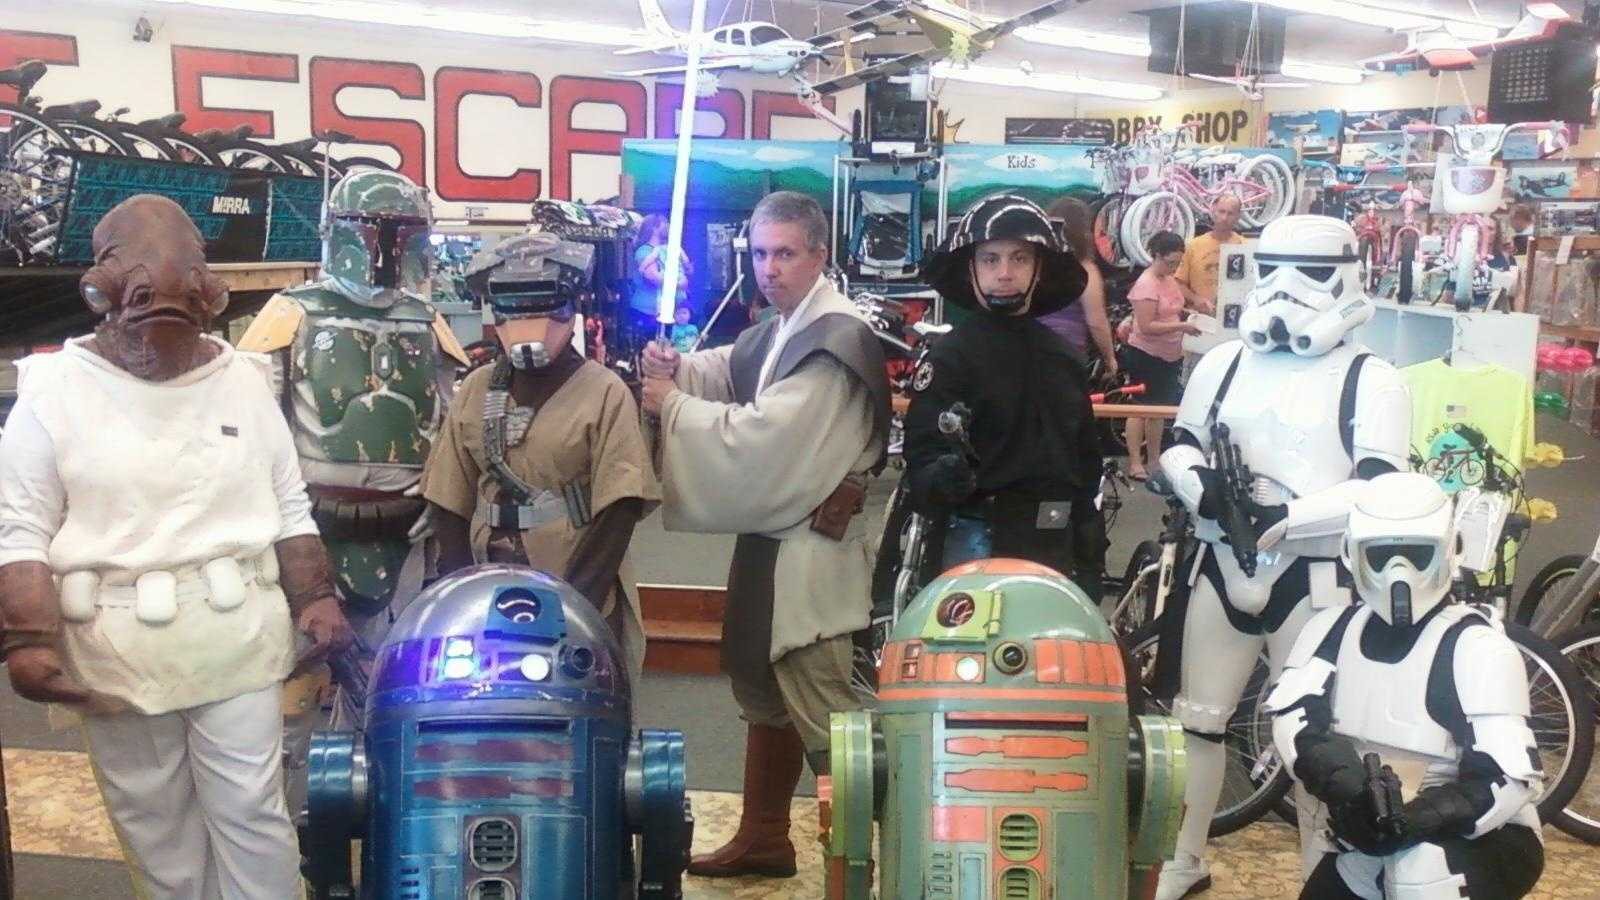 Star Wars characters at Great Escape